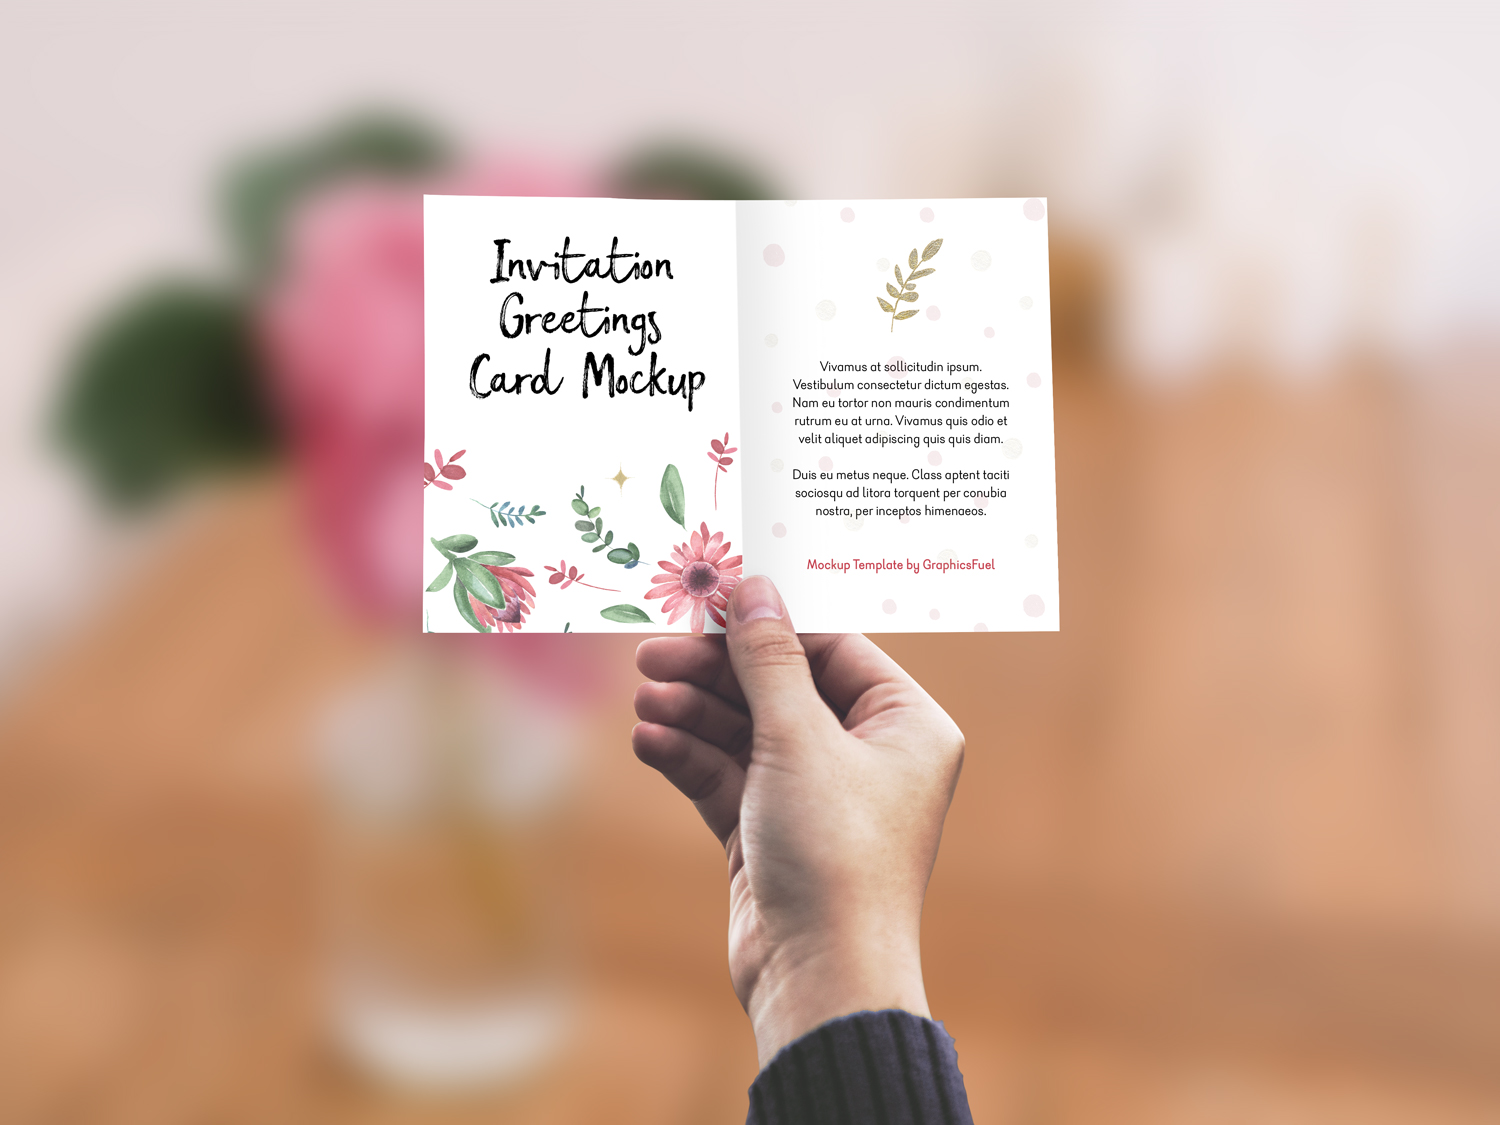 Invitation Greeting Card In Hand Mockup Free Mockup